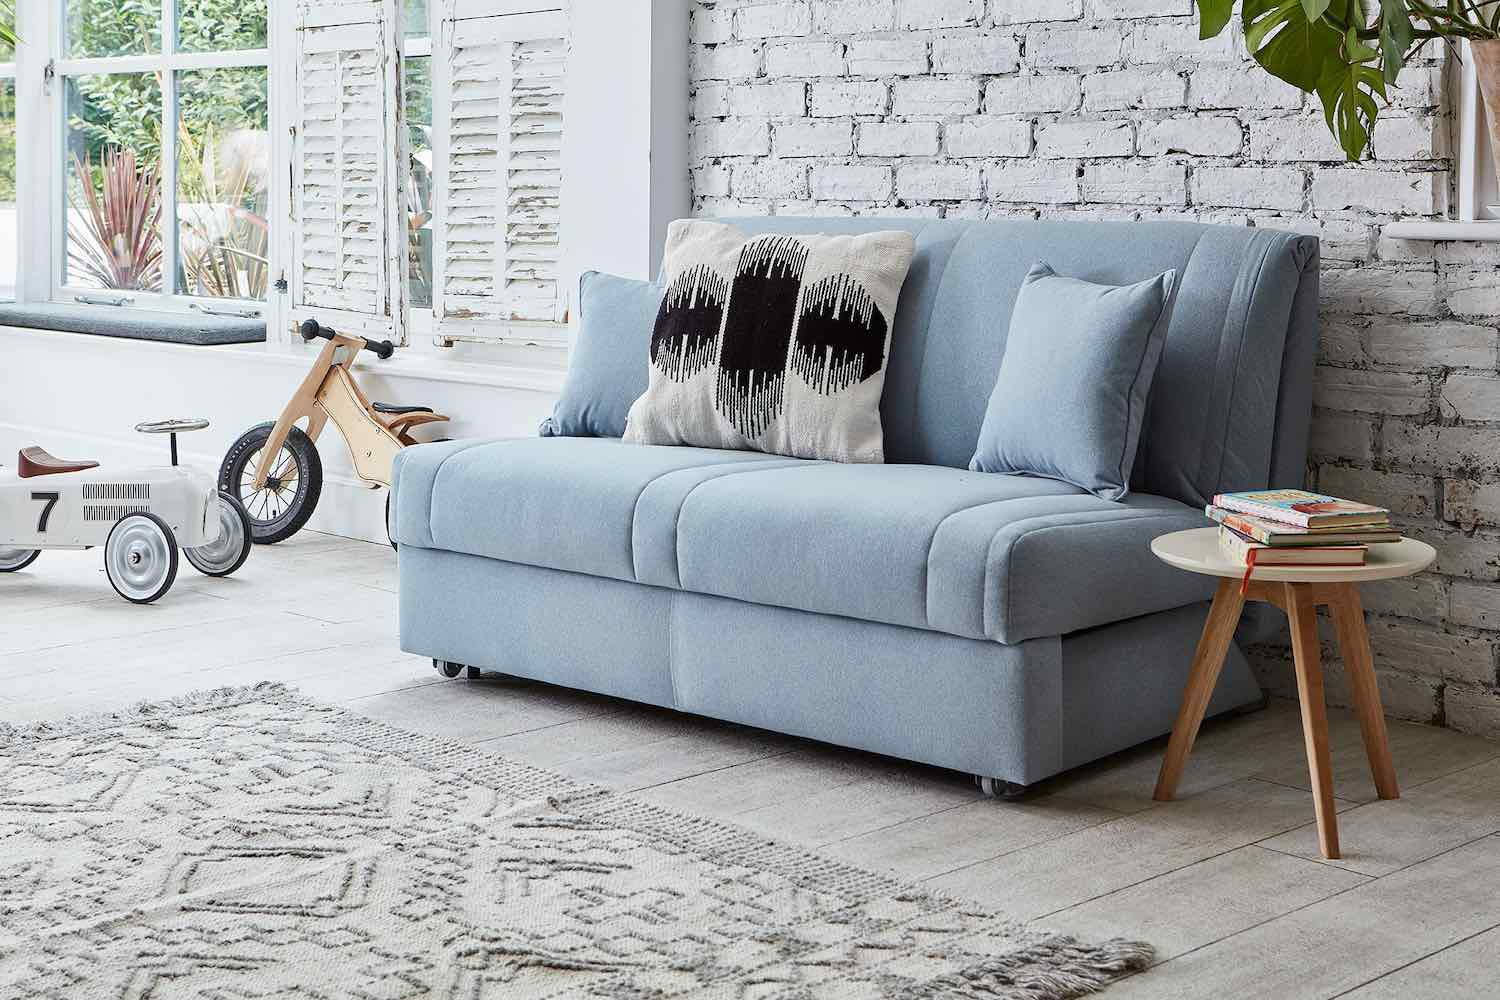 Bring ultimate comfort into your space with the Launceston 2 Seater No Arms Sofa Bed from Darlings of Chelsea.